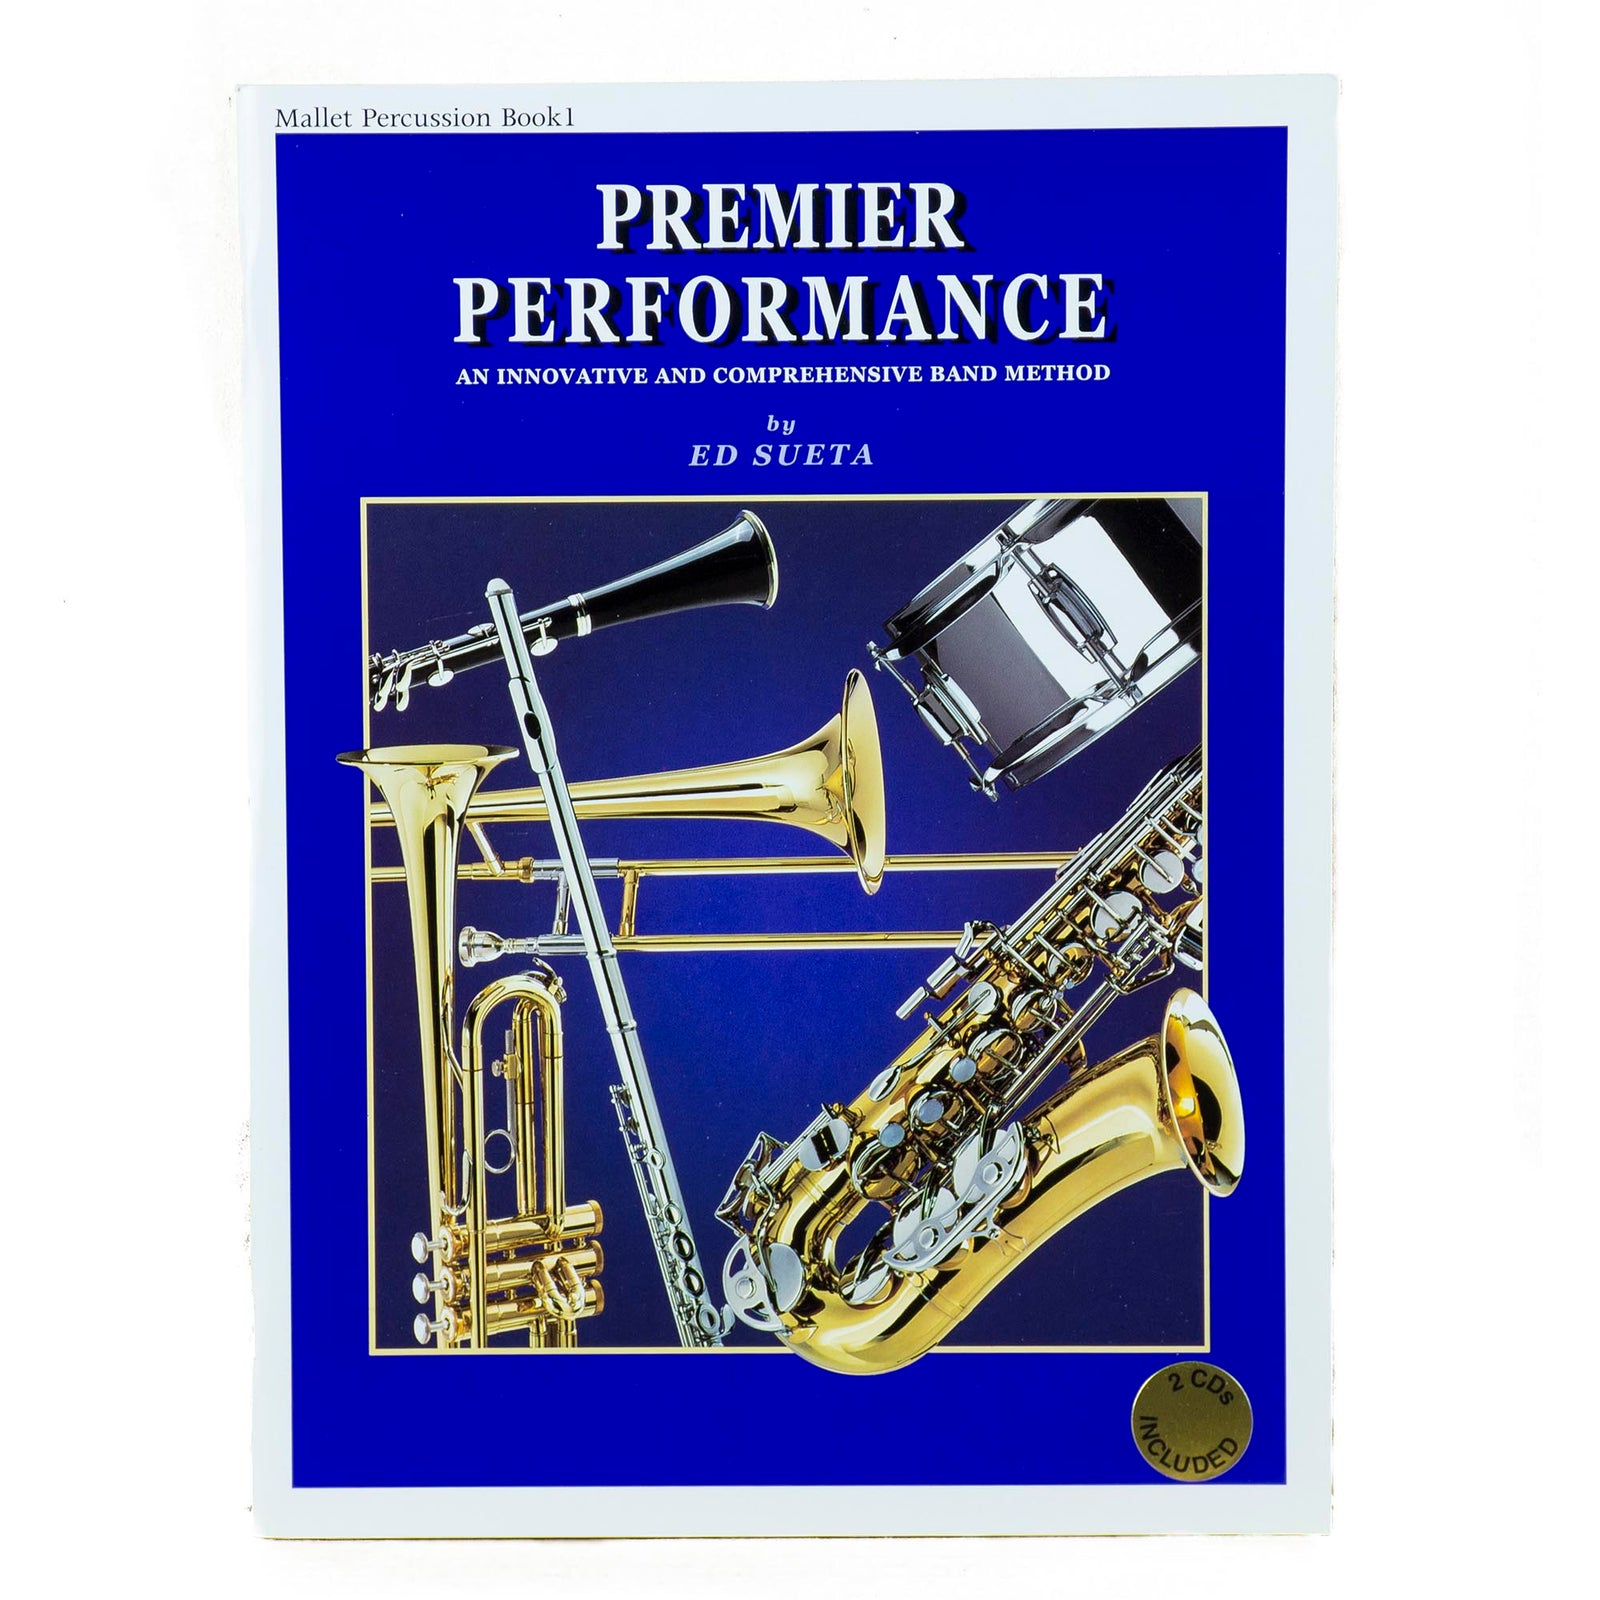 Premier Performance Mallet Percussion Book 1 With CD